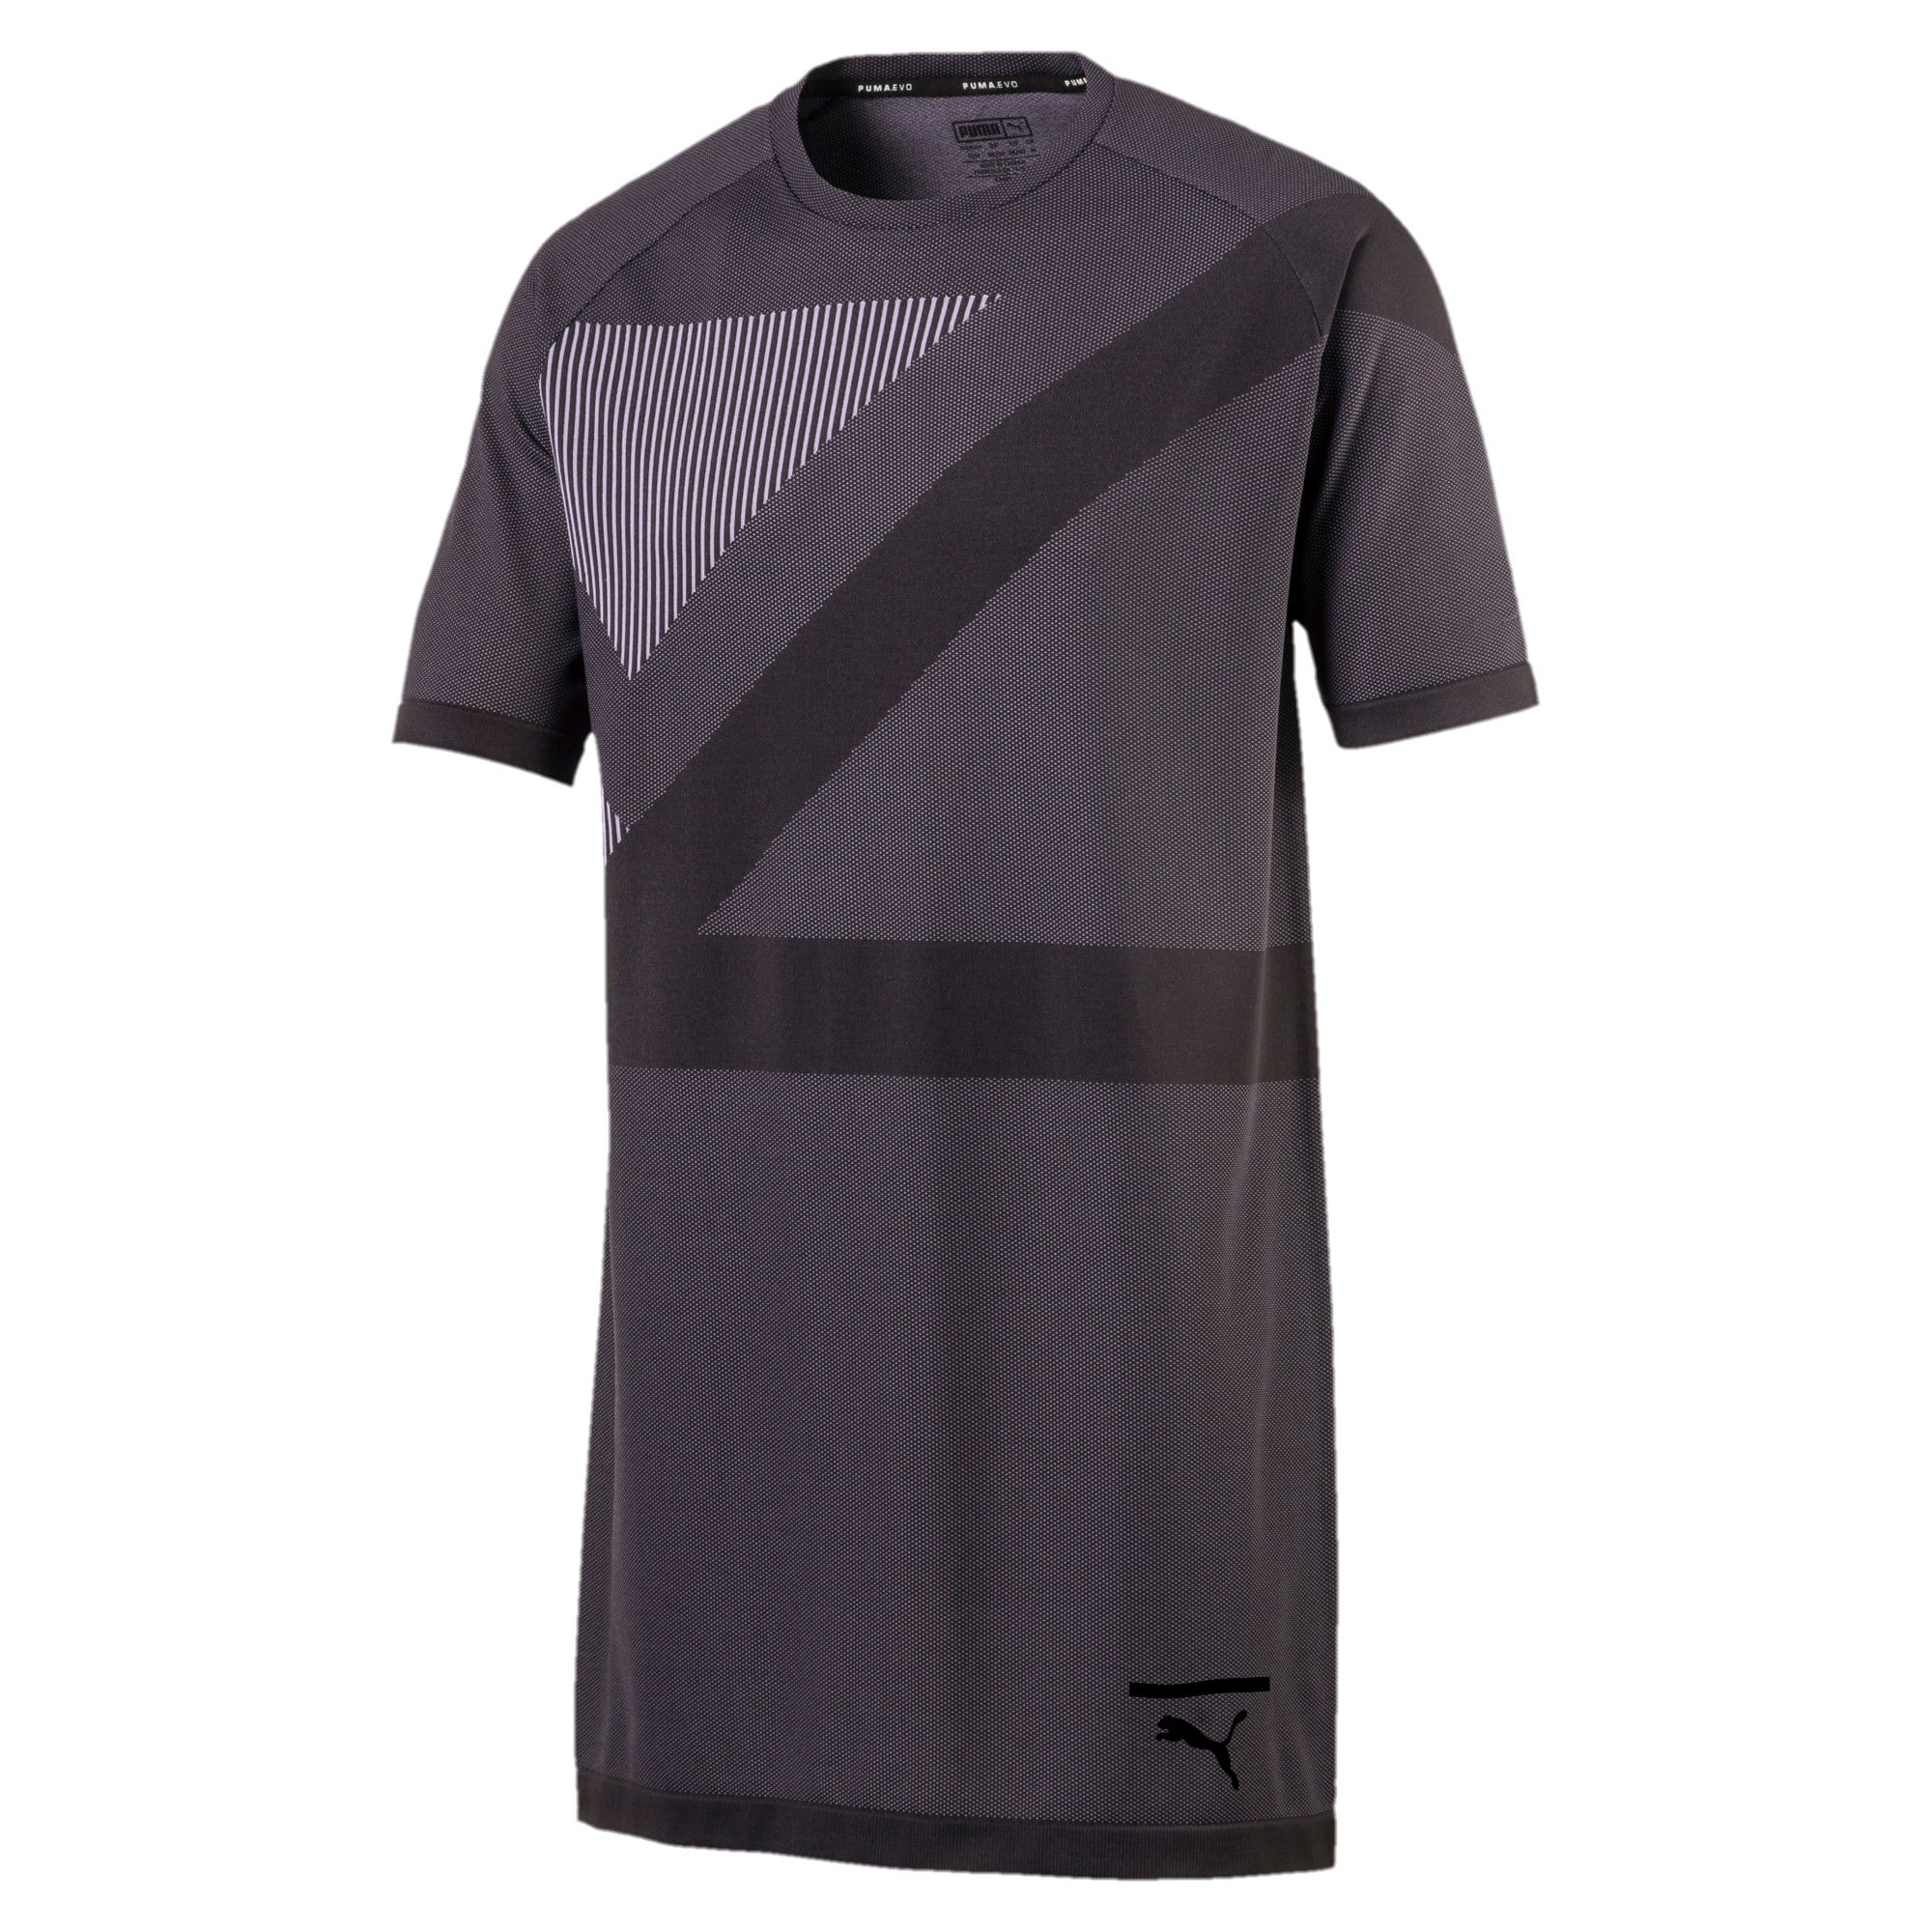 Thumbnail 1 of Evolution Men's evoKNIT T-Shirt, Puma Black, medium-IND